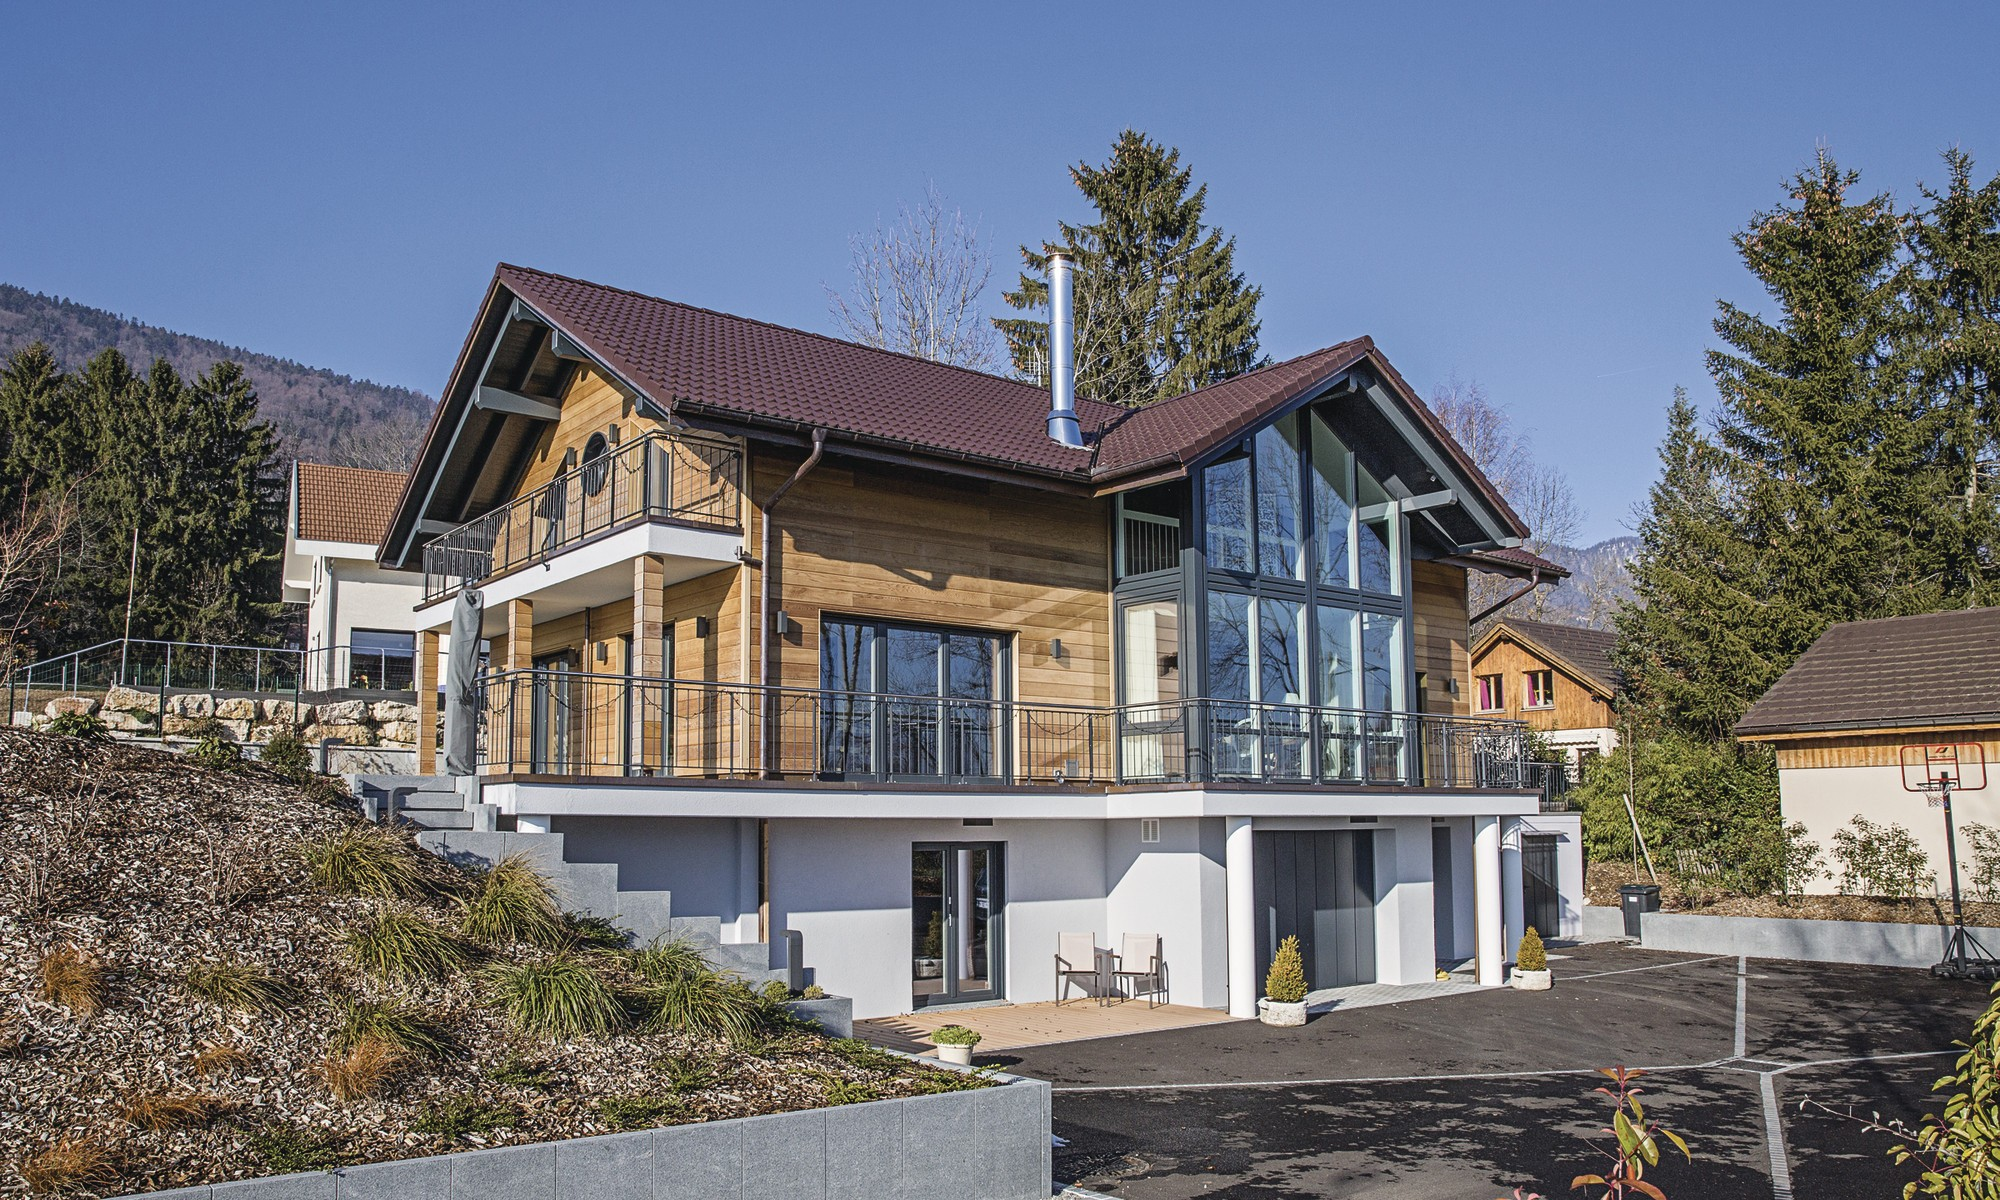 Wooden eco friendly prefabricated home